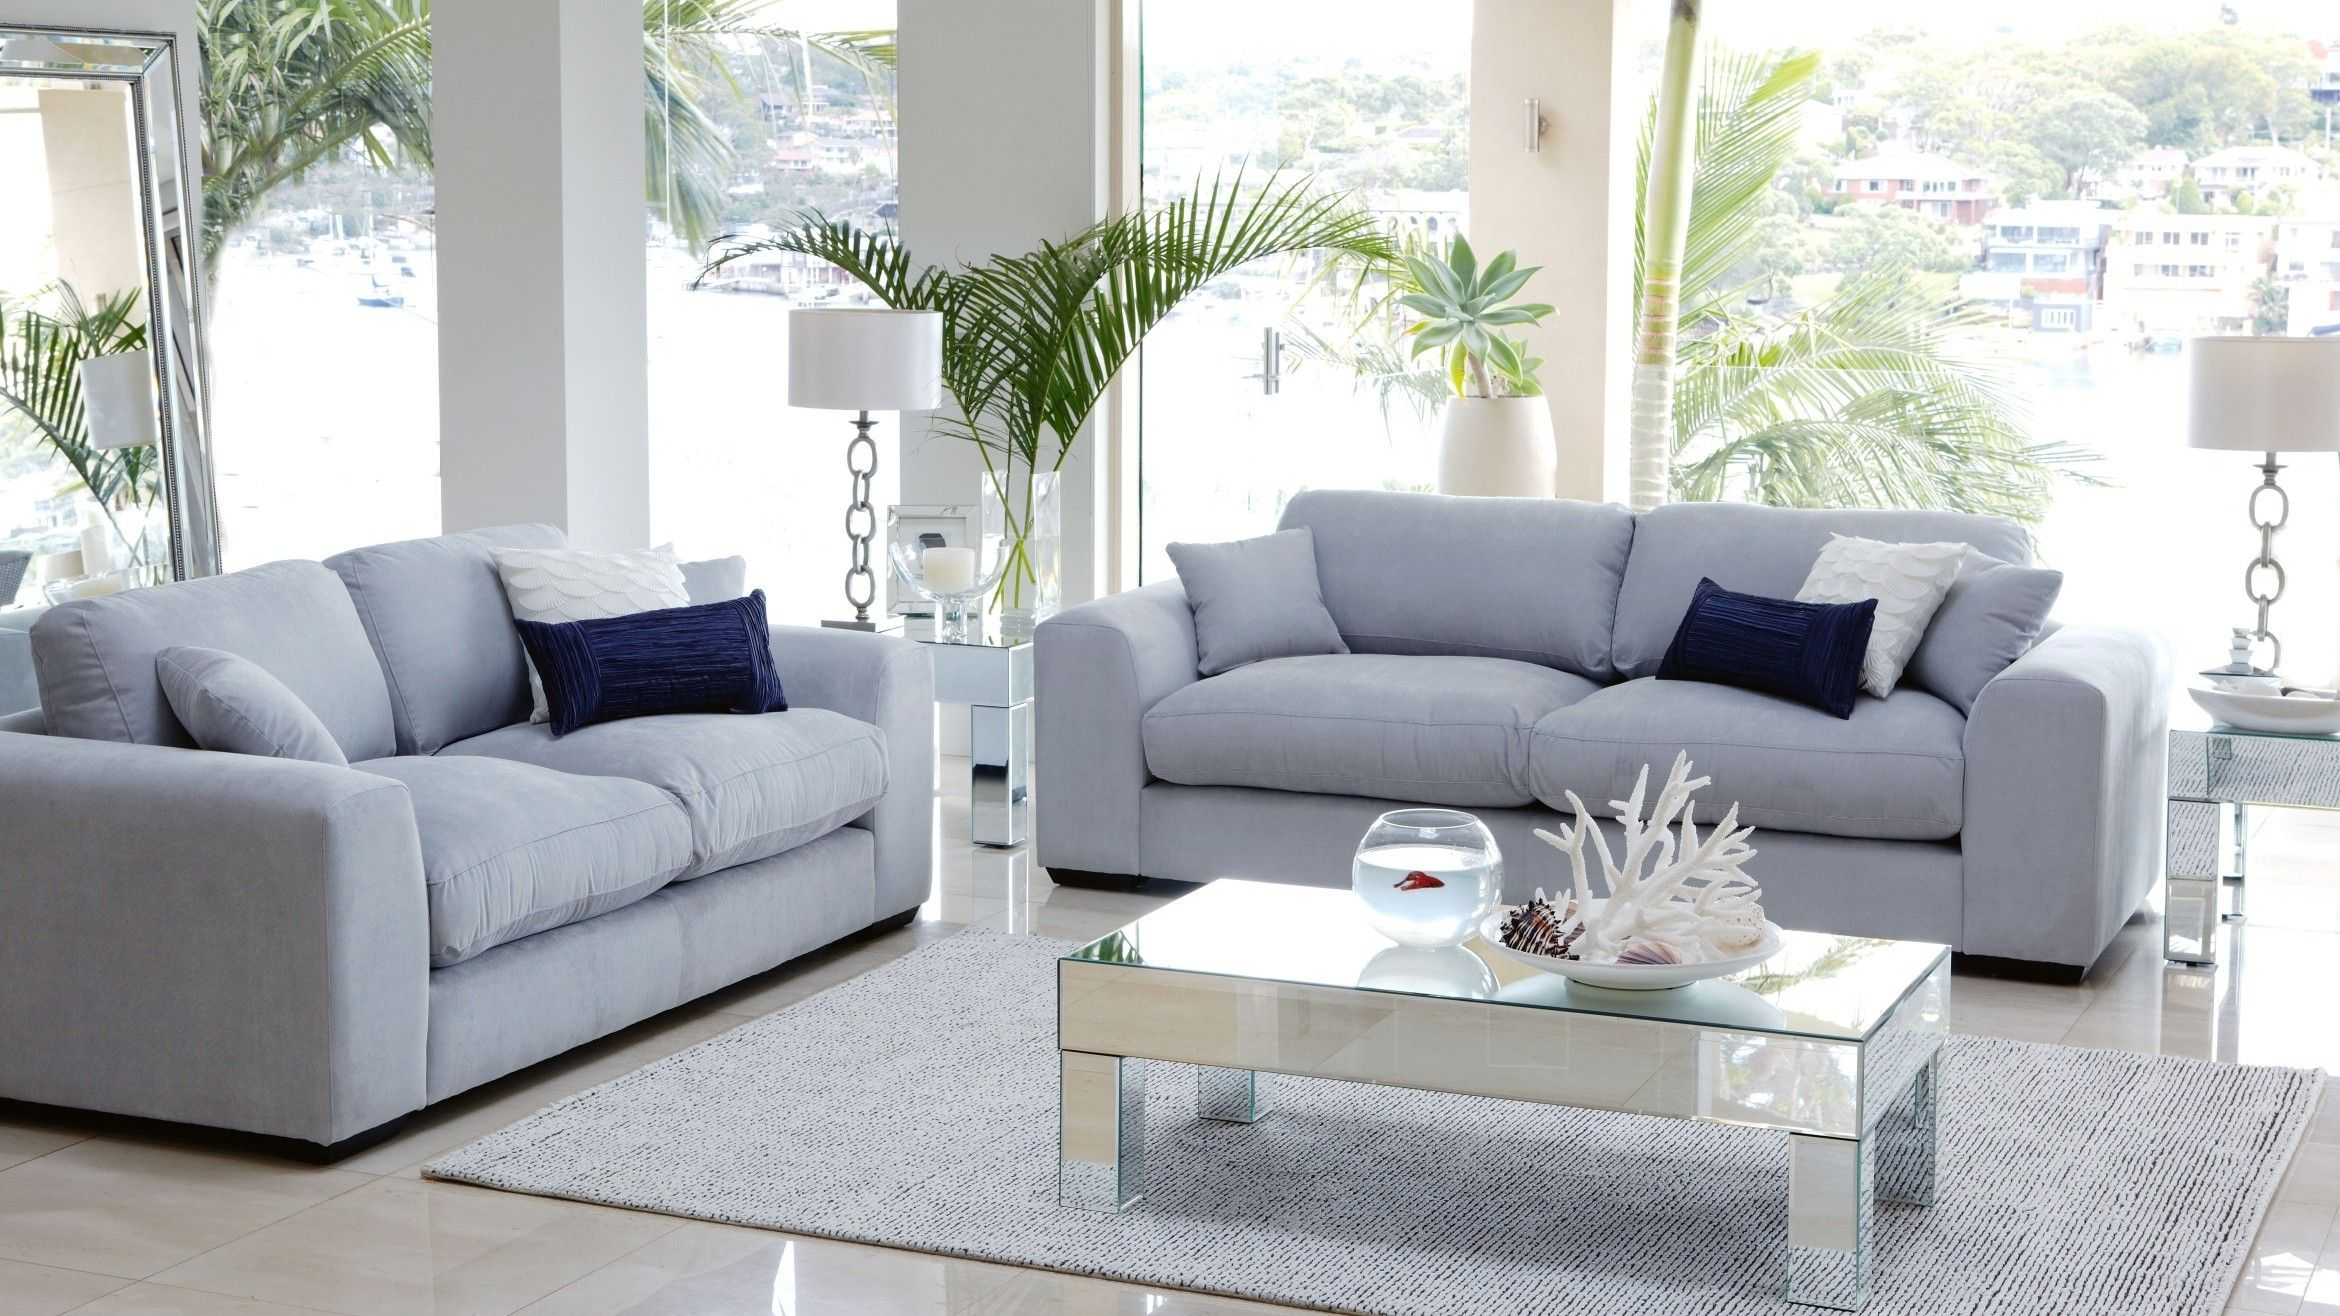 Catalina 2 Piece Fabric Lounge Suite [I need a 3 seater and a 2